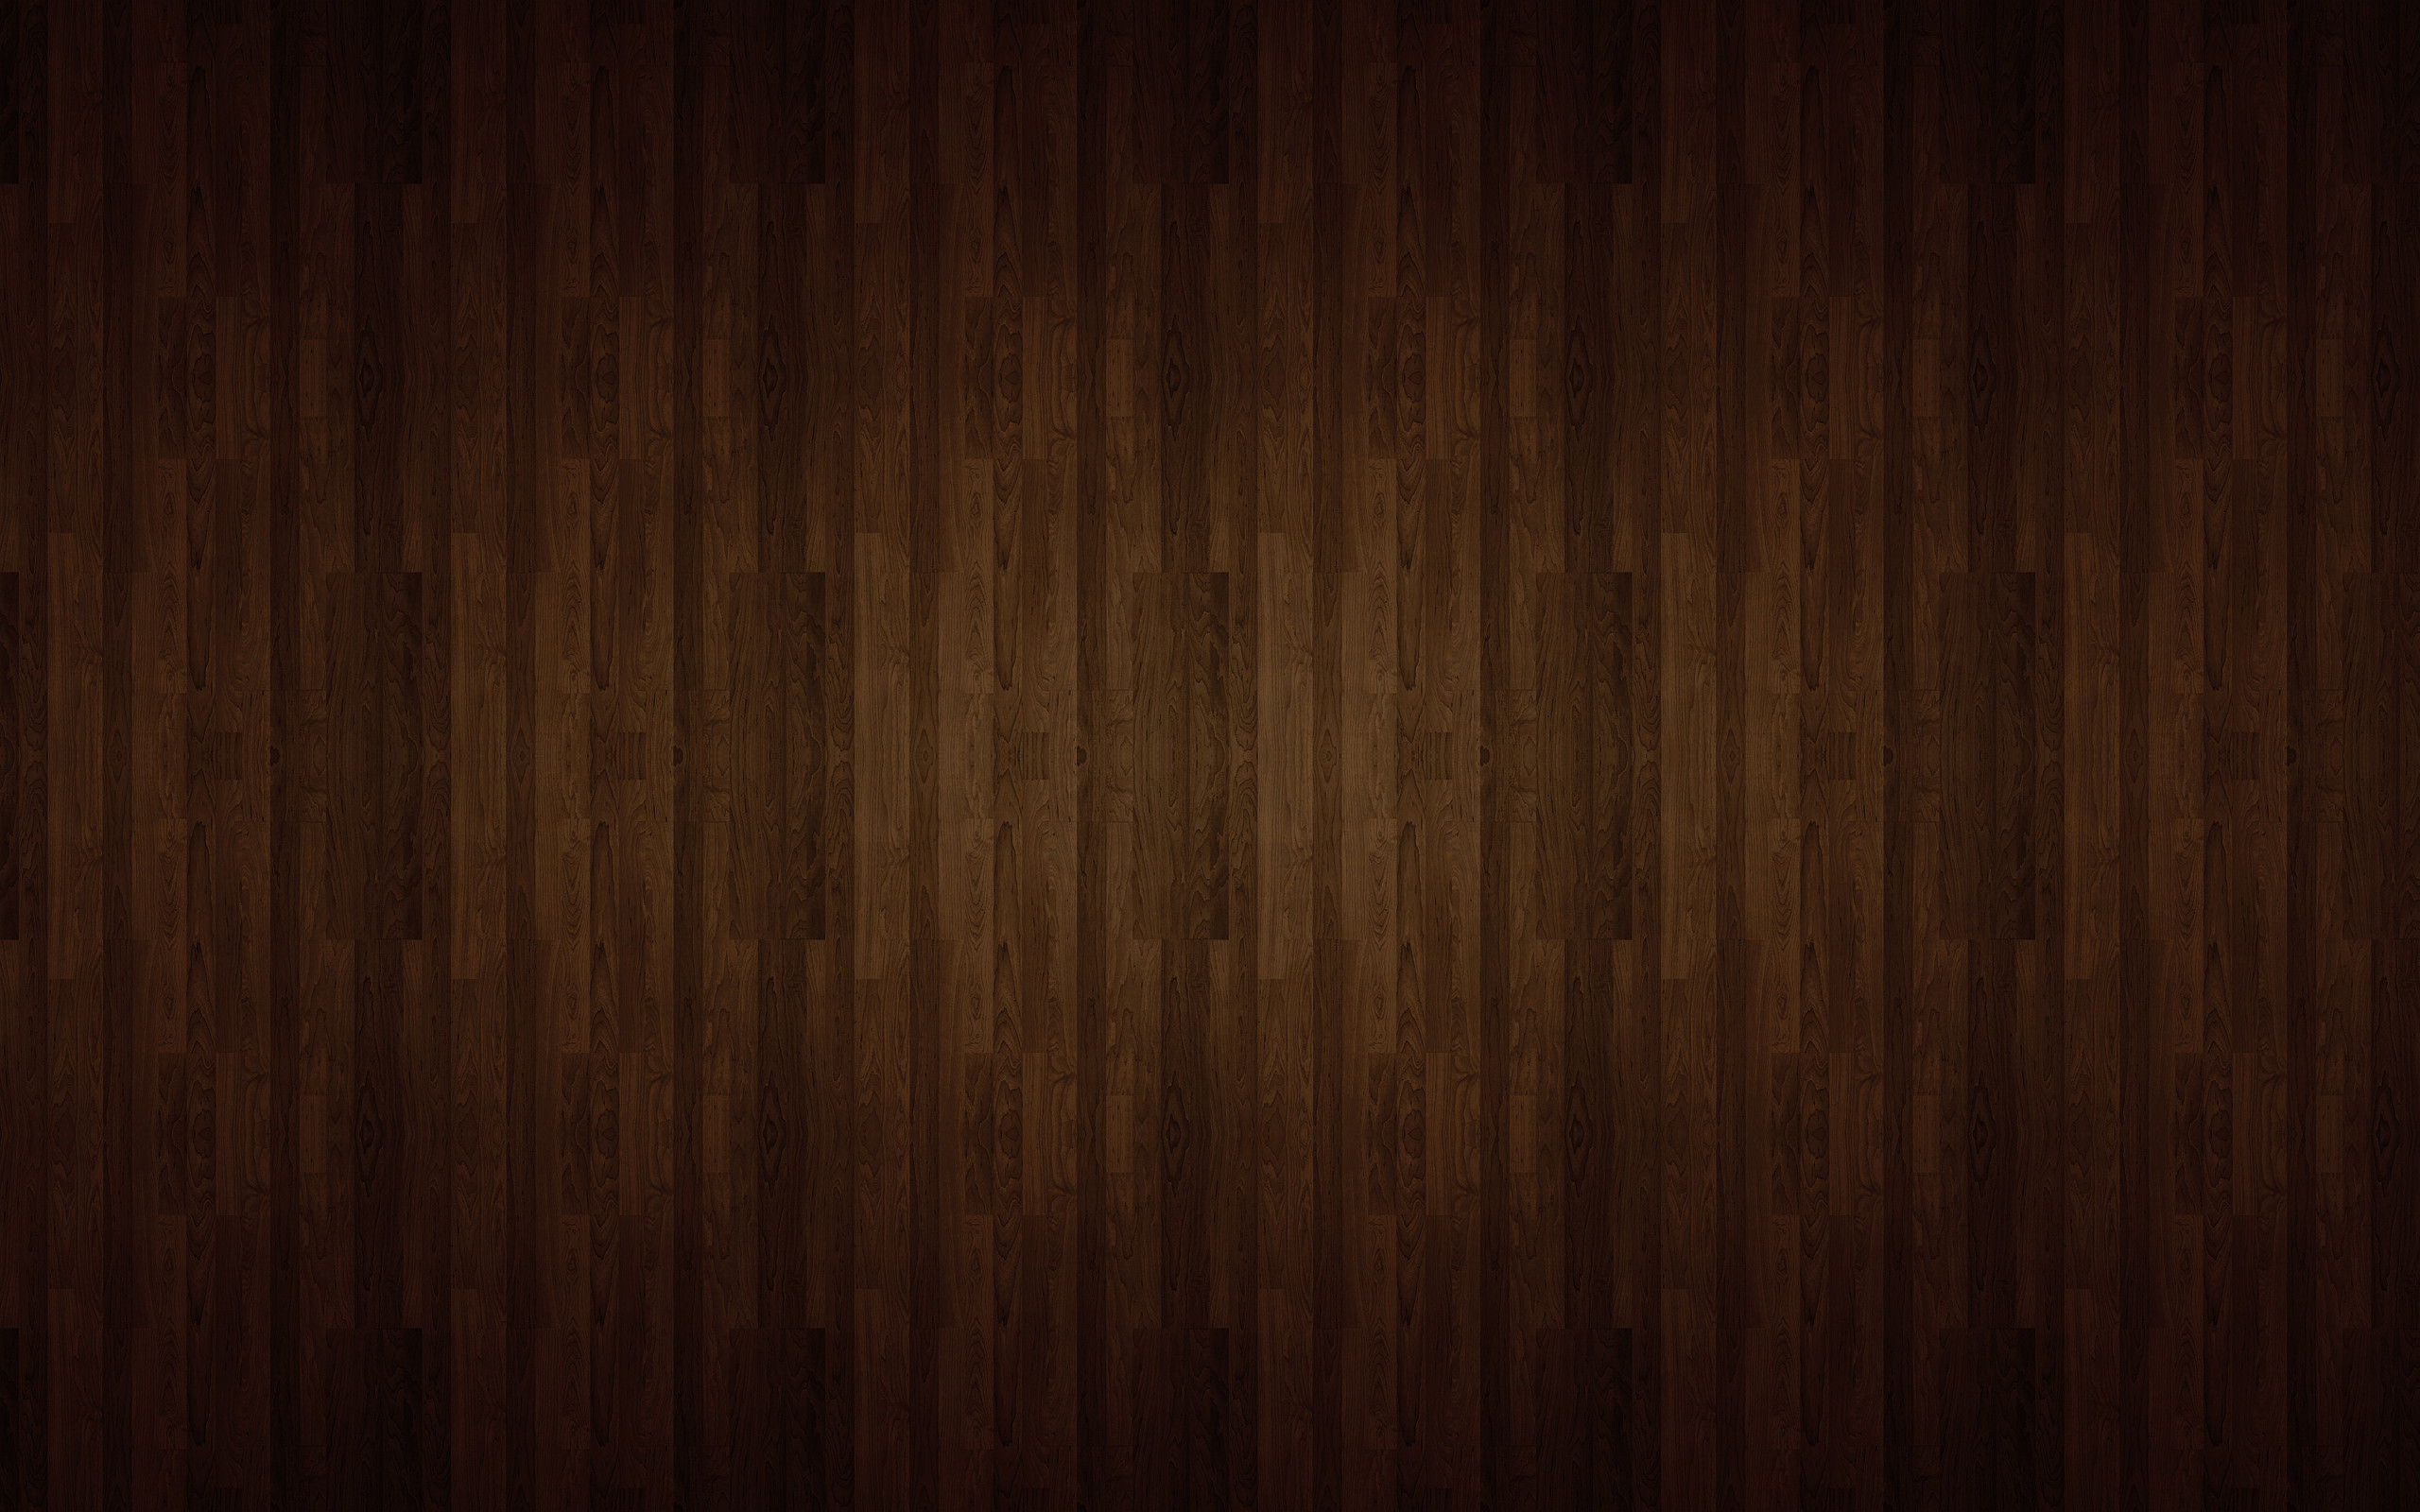 2560x1600 Dark Wood Wallpaper 601